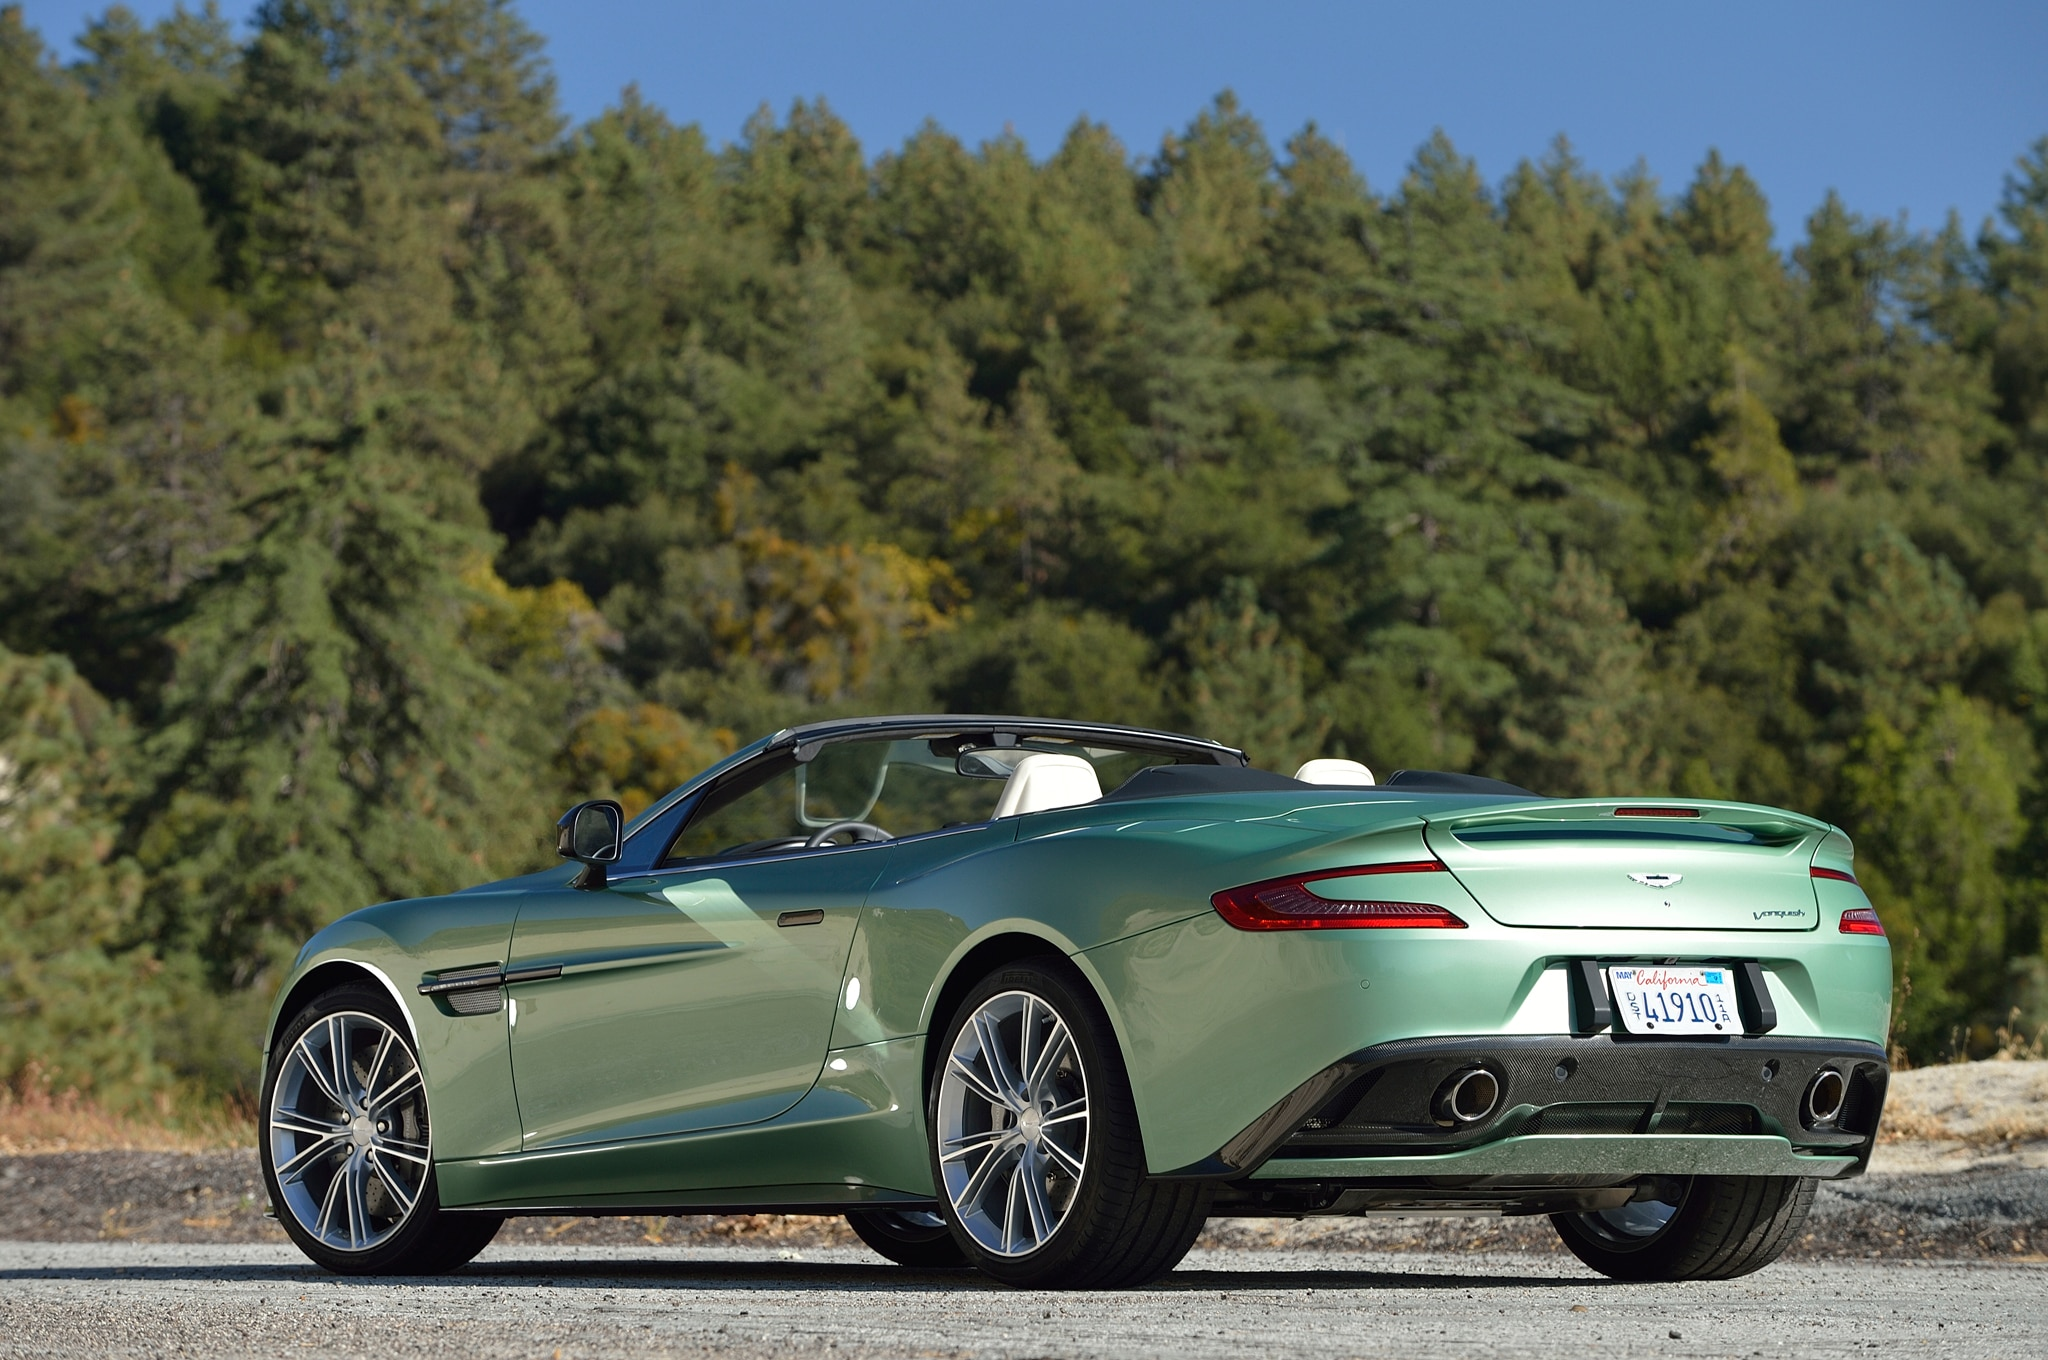 2014 Aston Martin Vanquish Volante Rear Three Quarter1